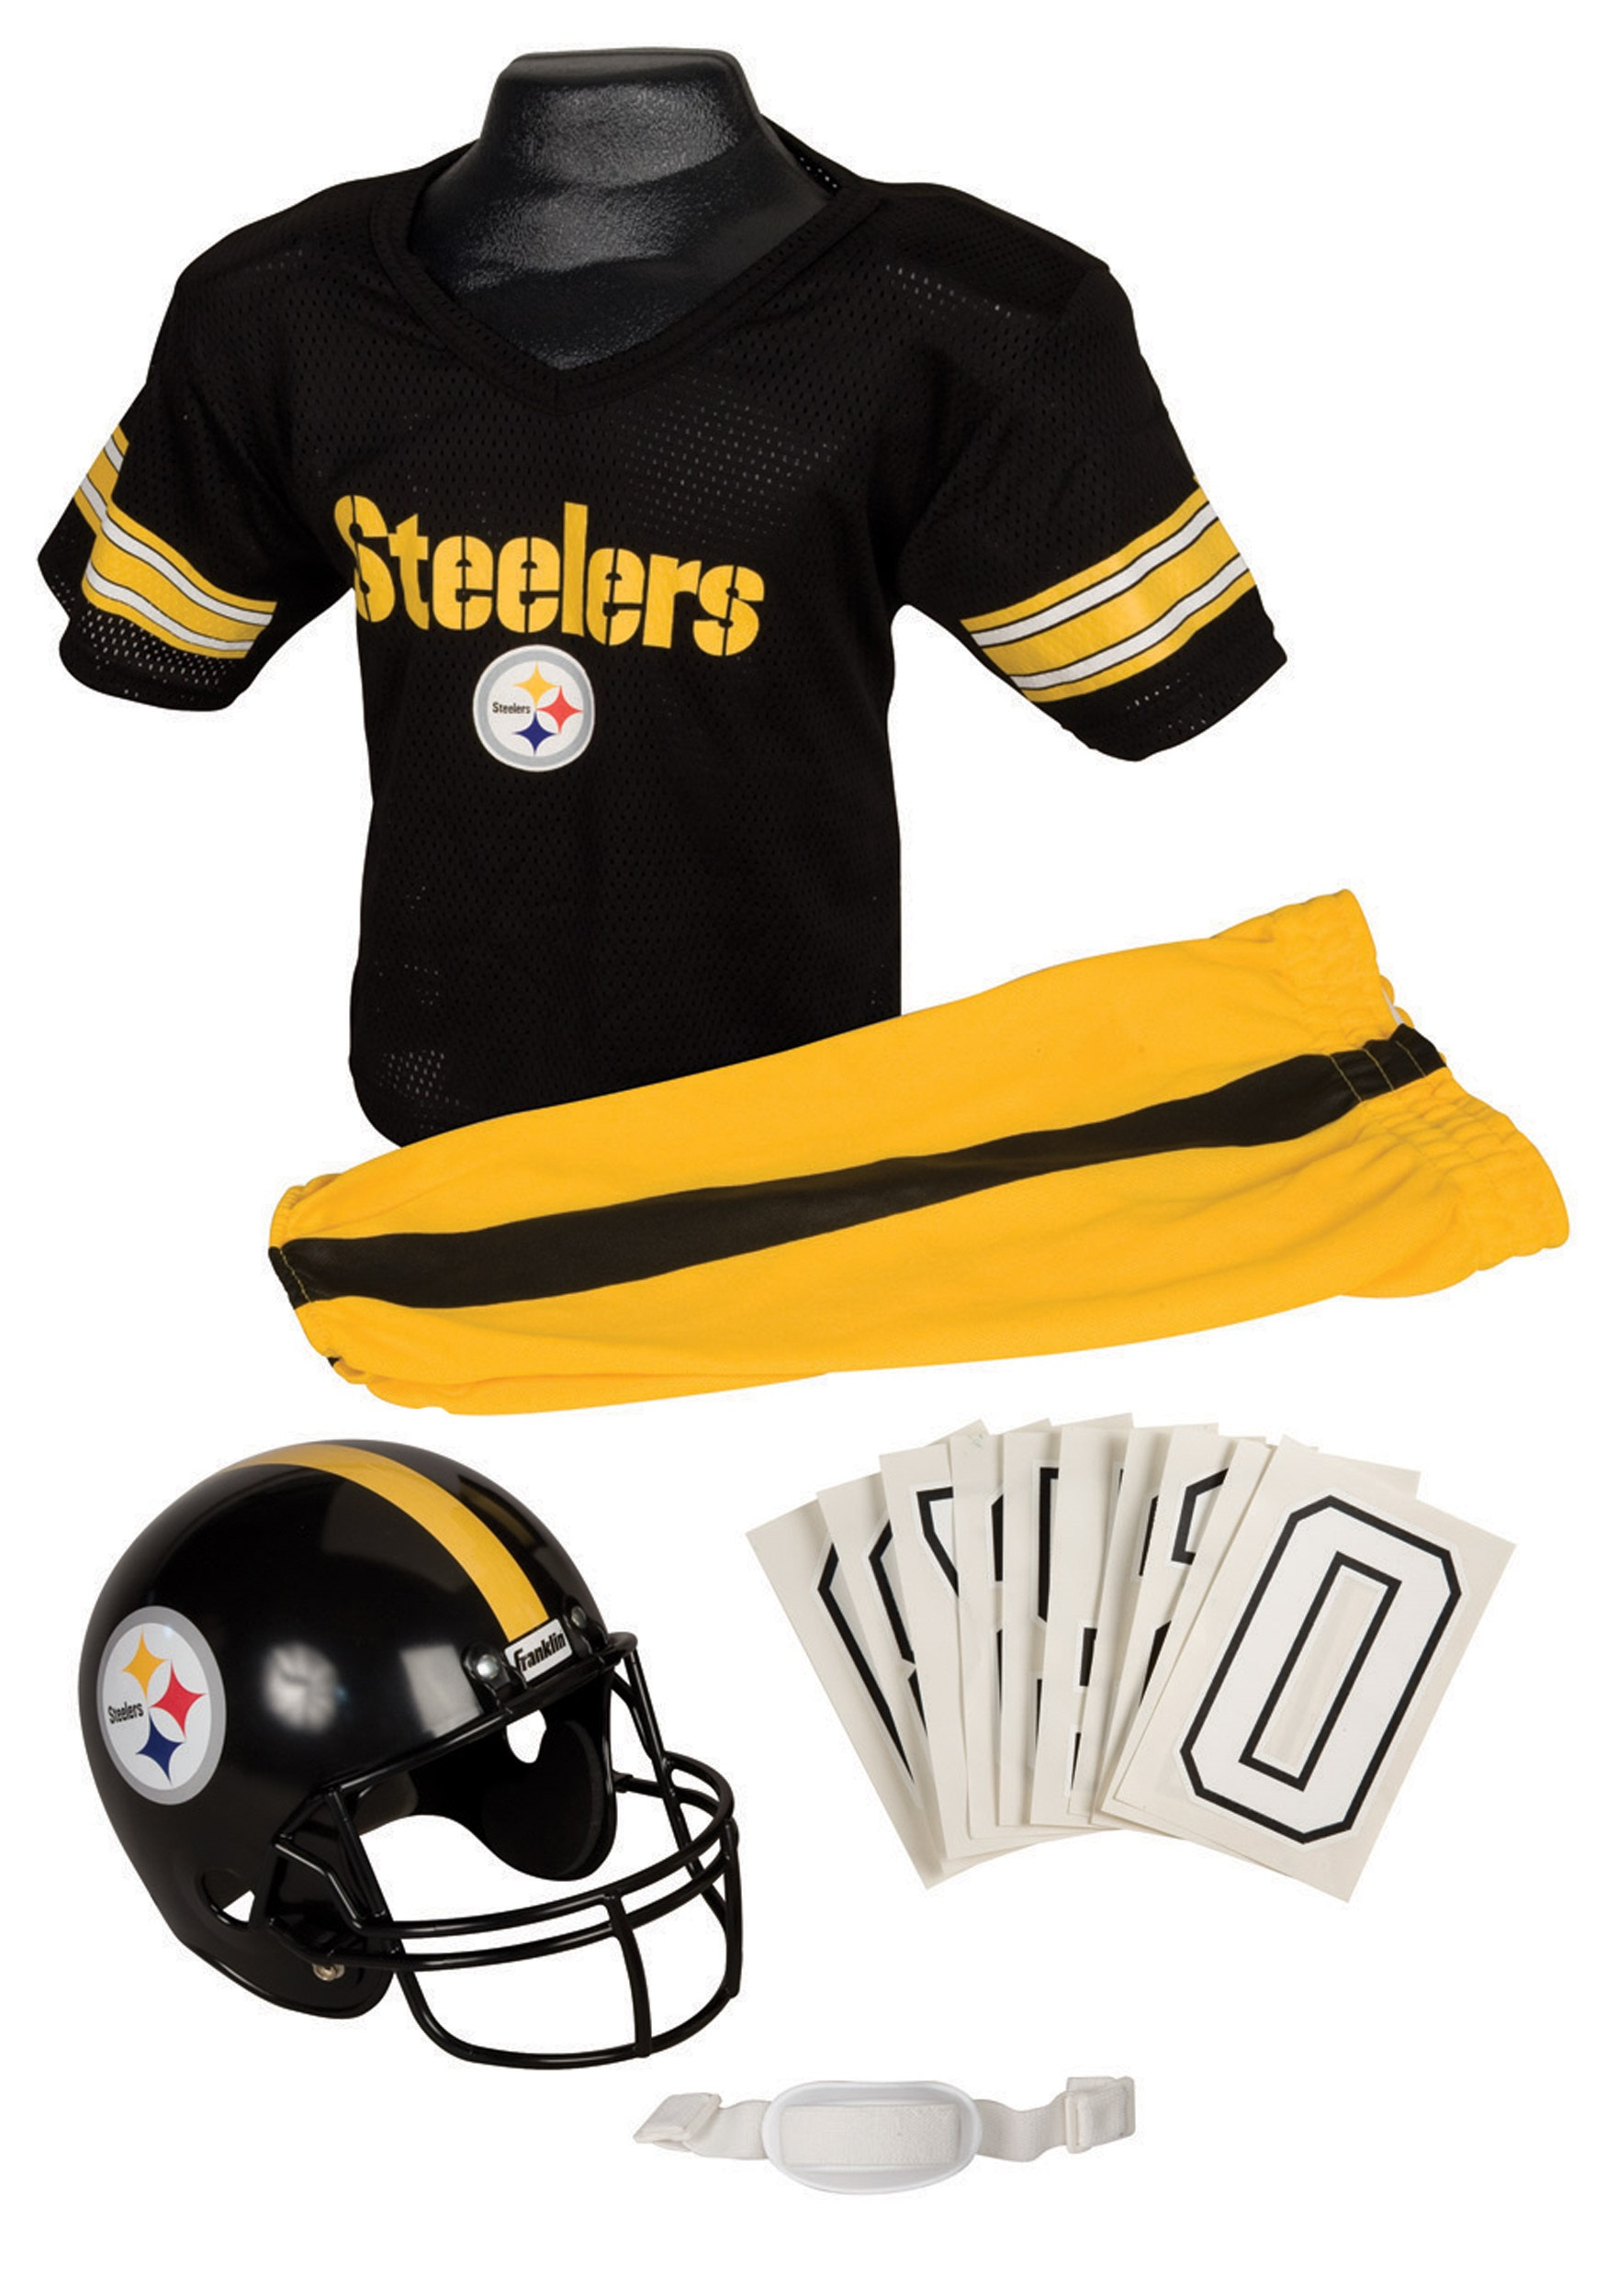 0d5268f18 NFL Steelers Player Costume - Steelers Football Player Uniform